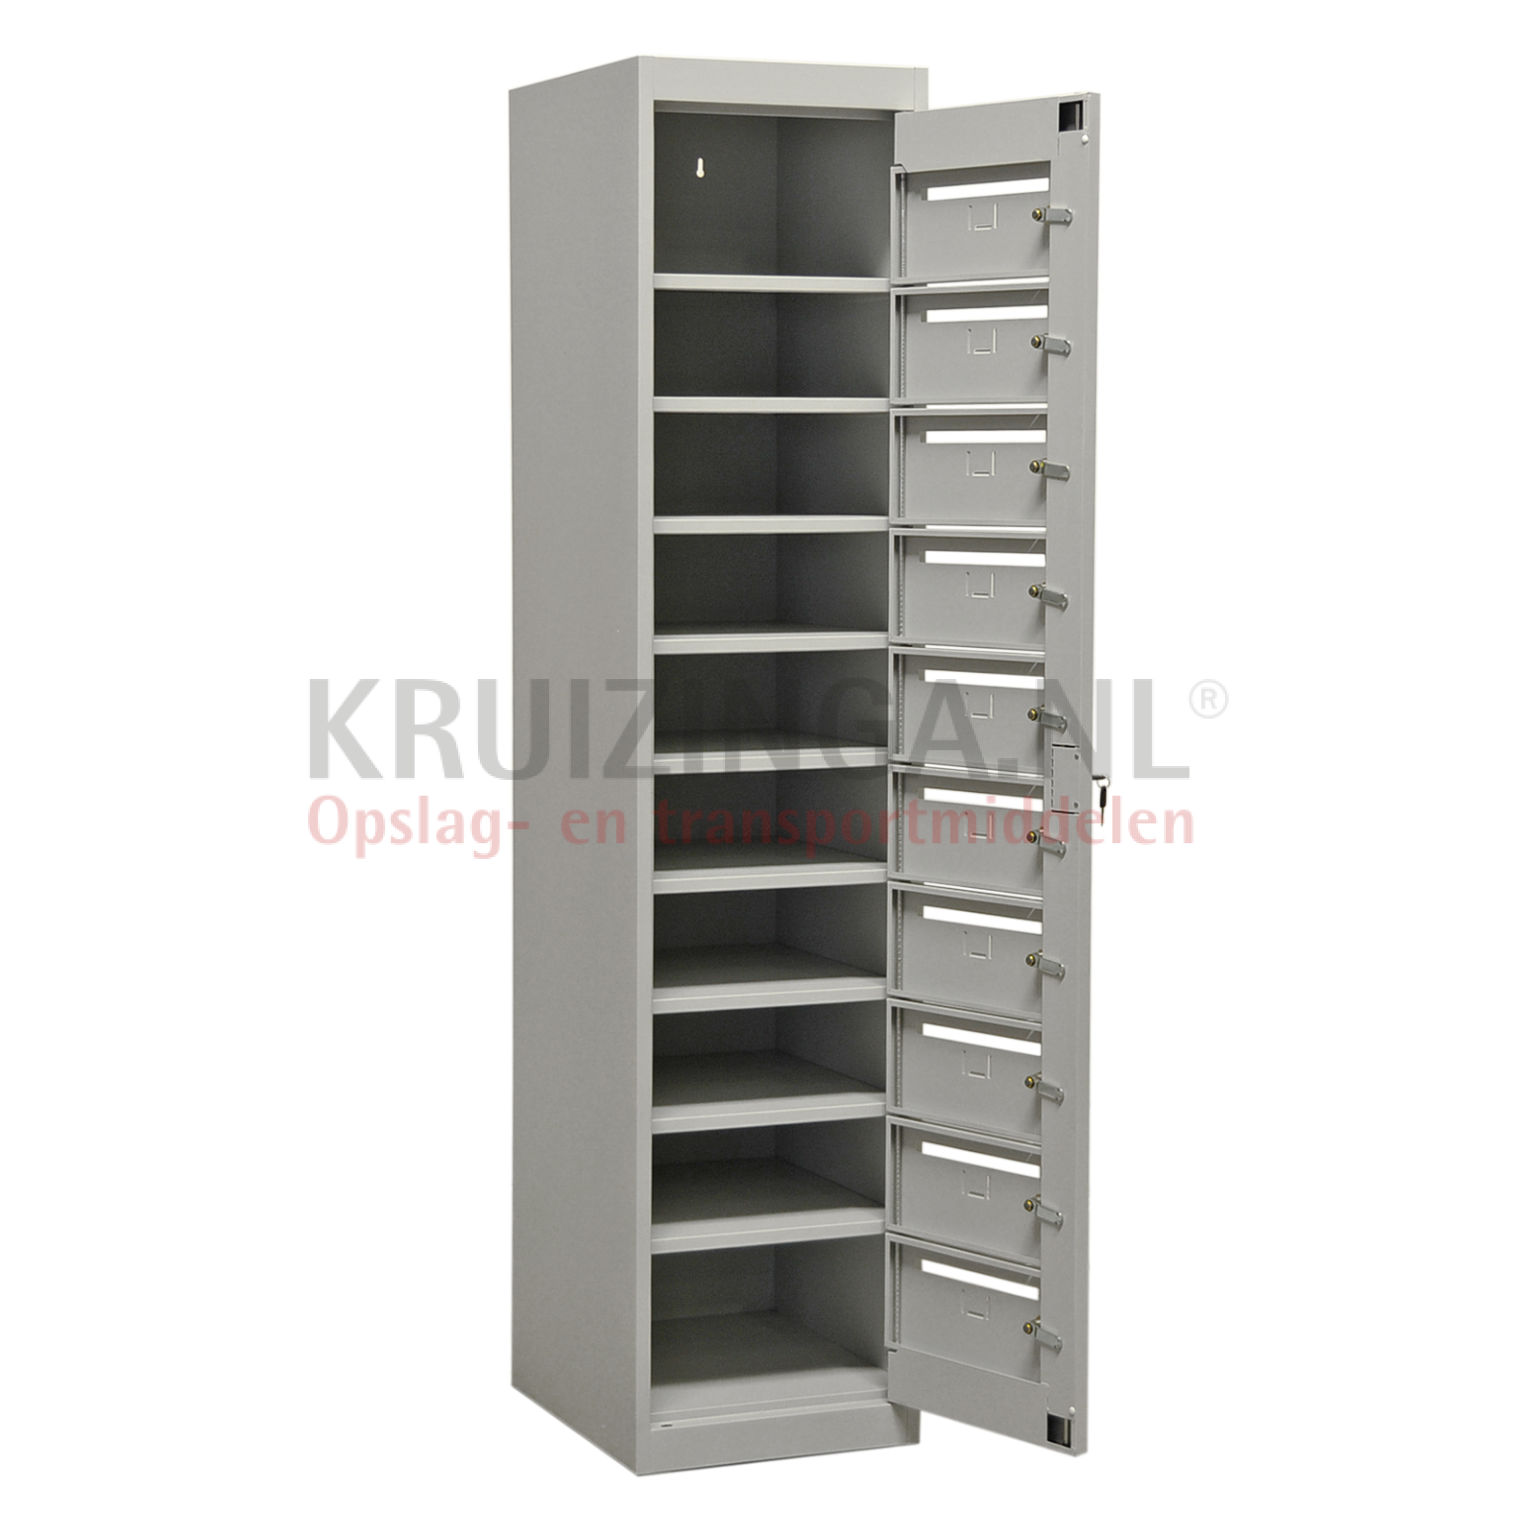 armoire armoire courrier 10 portes 517 50 frais de livraison inclus. Black Bedroom Furniture Sets. Home Design Ideas